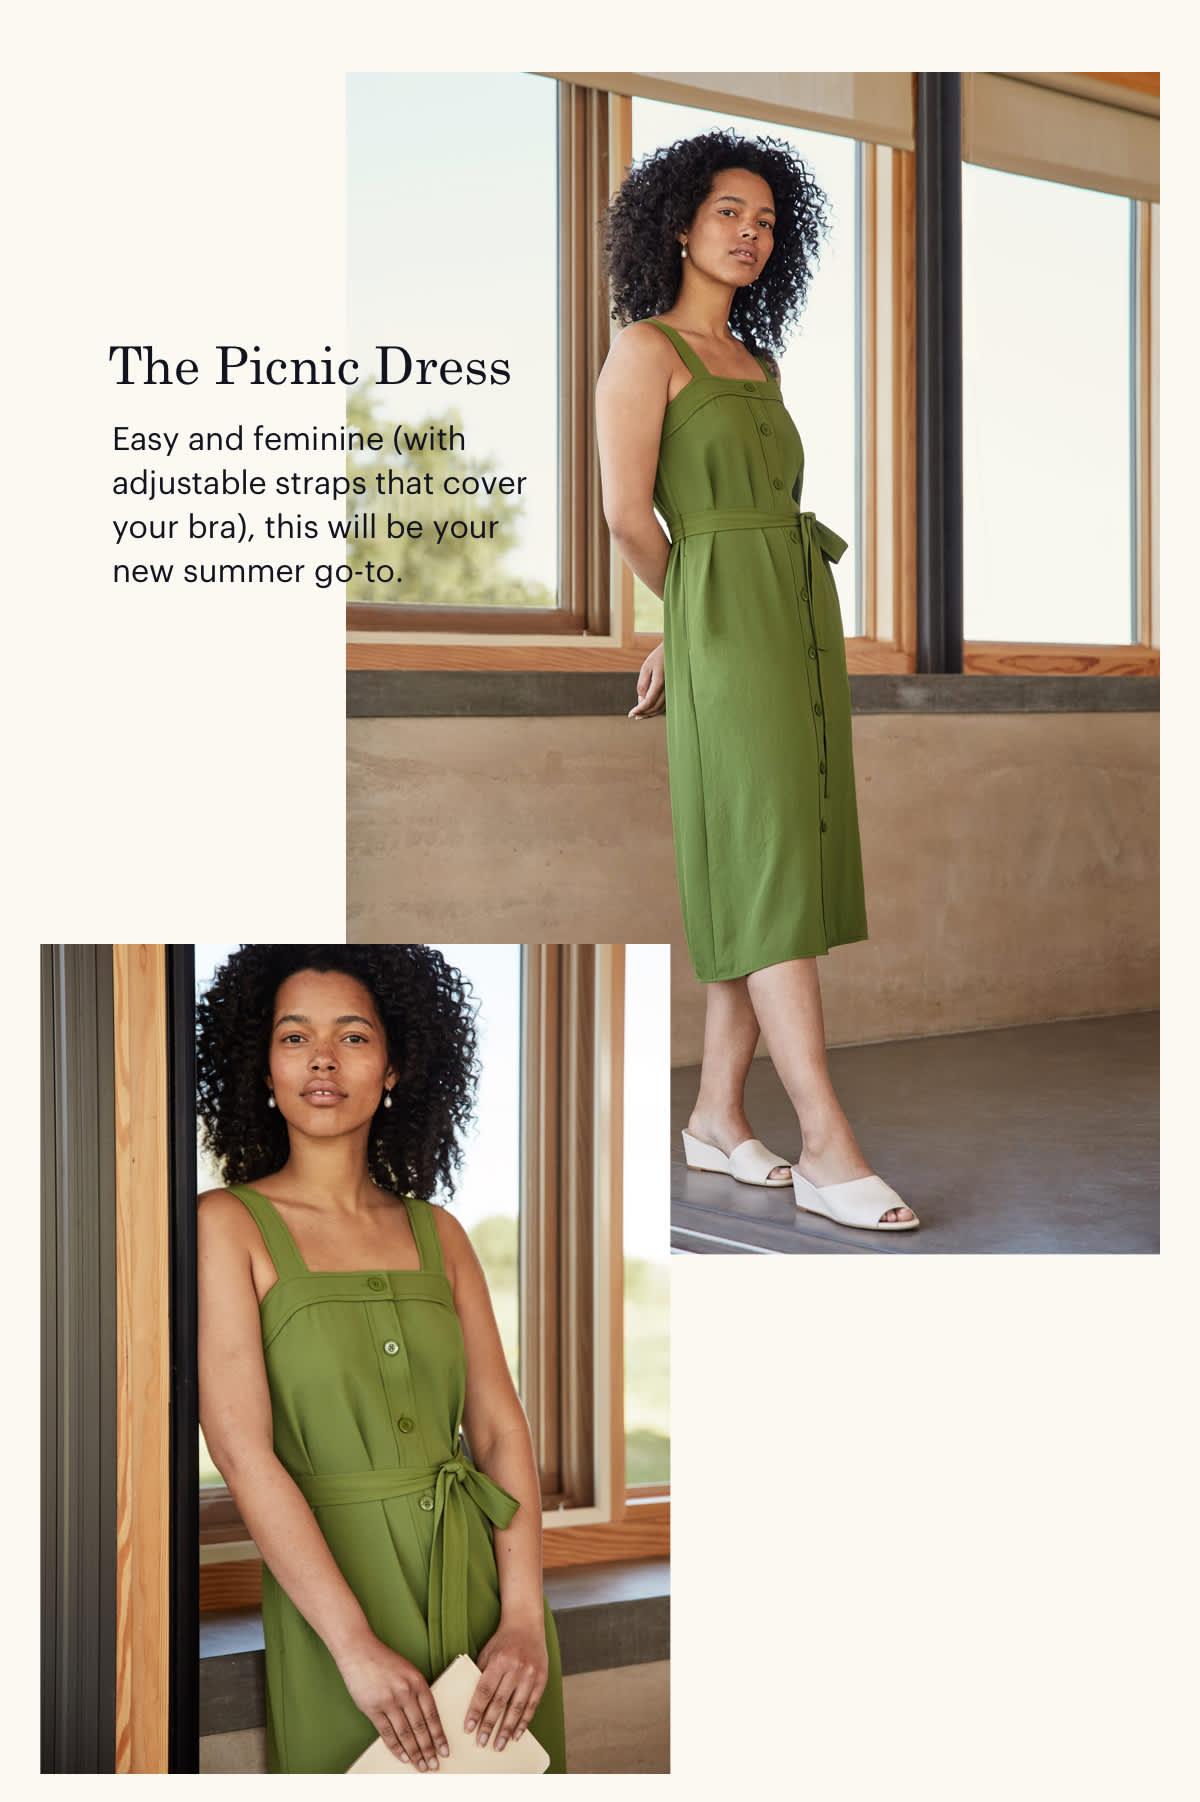 The Picnic Dress. Easy and feminine (with adjustable straps that cover your bra), this will be your new summer go-to.